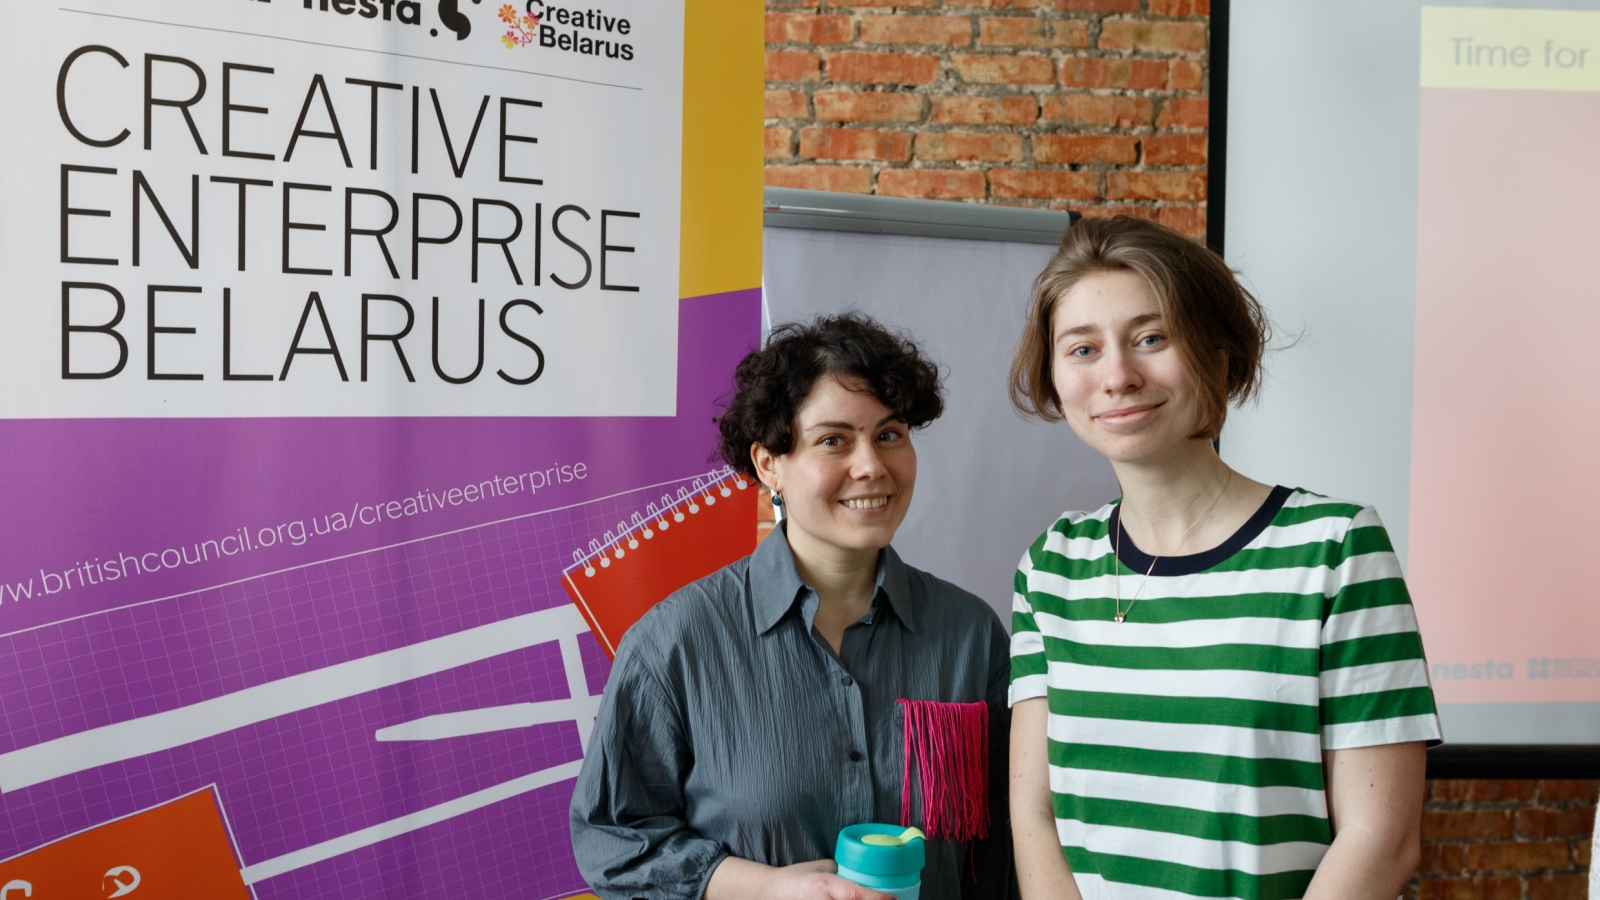 Margarita now works to establish an NGO Creative Belarus